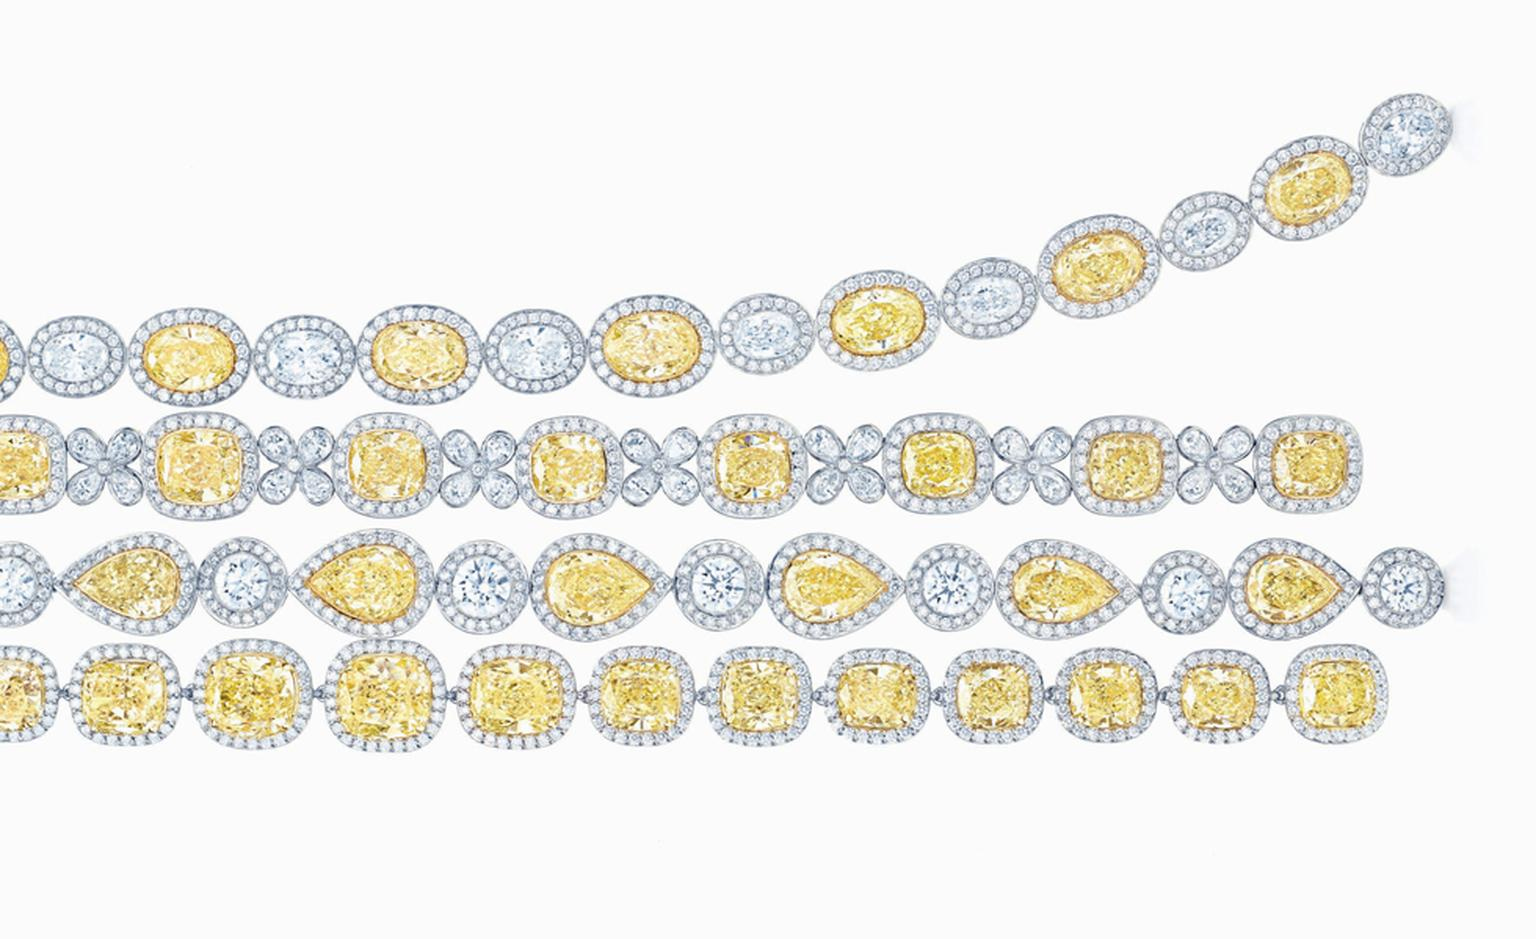 Tiffany & Co, yellow diamond bracelets: price on application